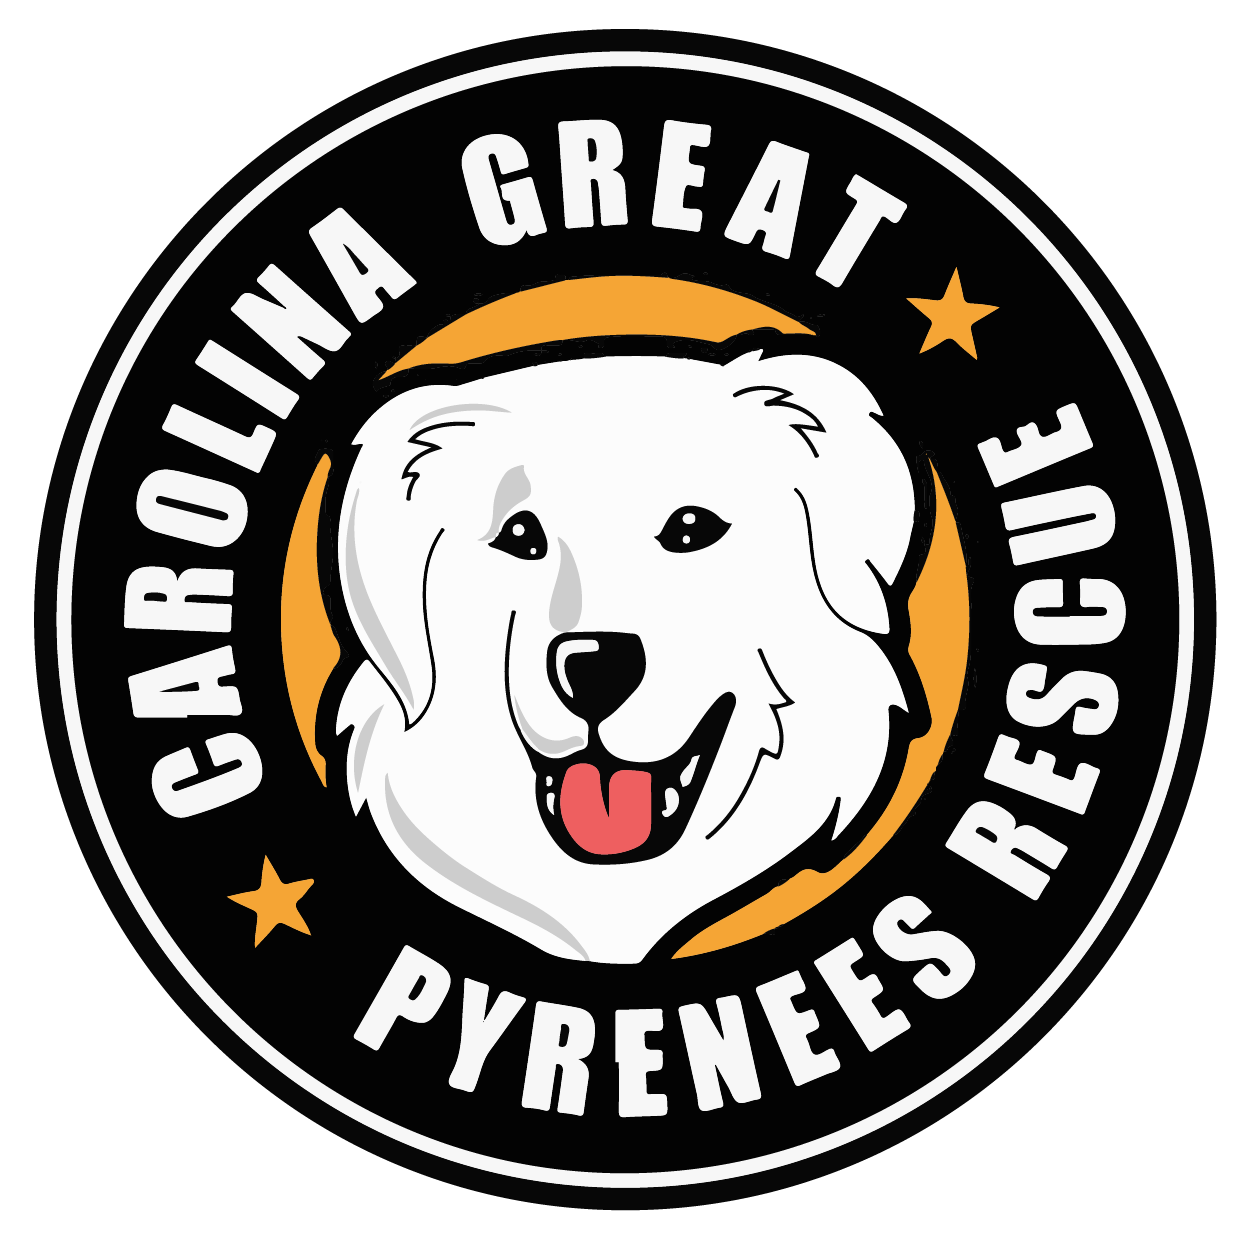 Carolina Great Pyrenees Rescue is a non-profit based out of Charlotte, NC that works to rescue and rehome abandoned and abused Pyrs in North and South Carolina. -